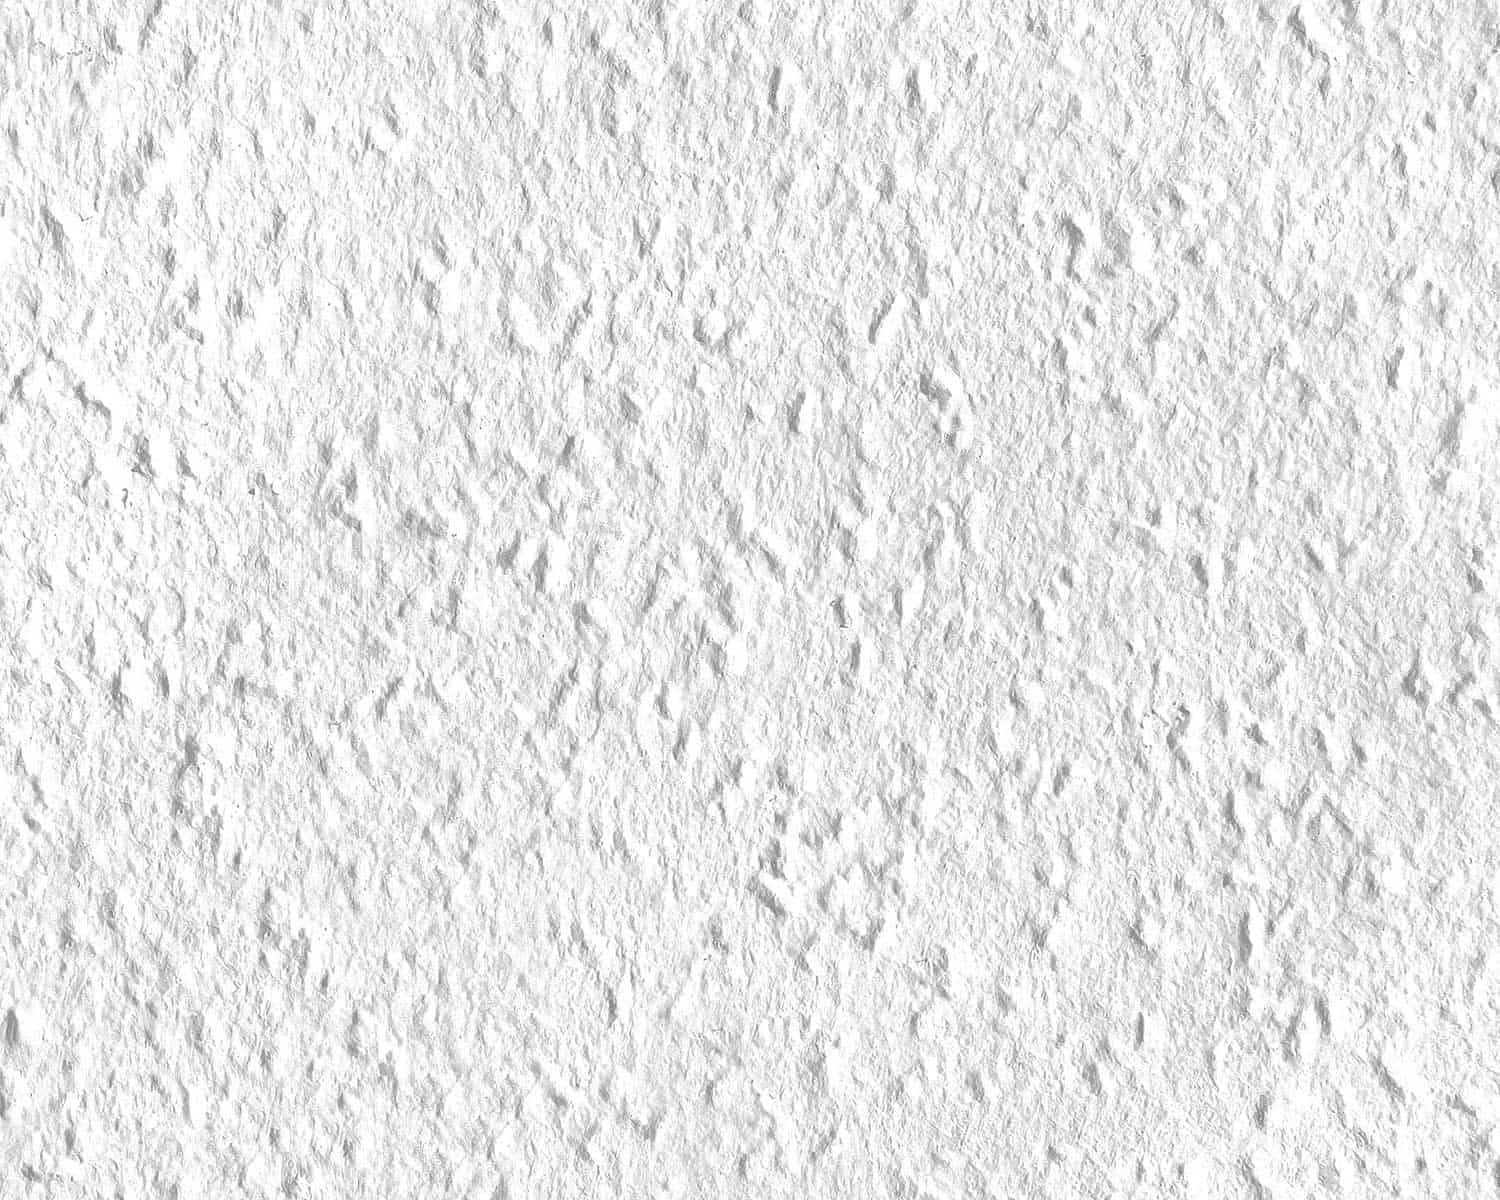 A close up of painted white texture woodchip wallpaper